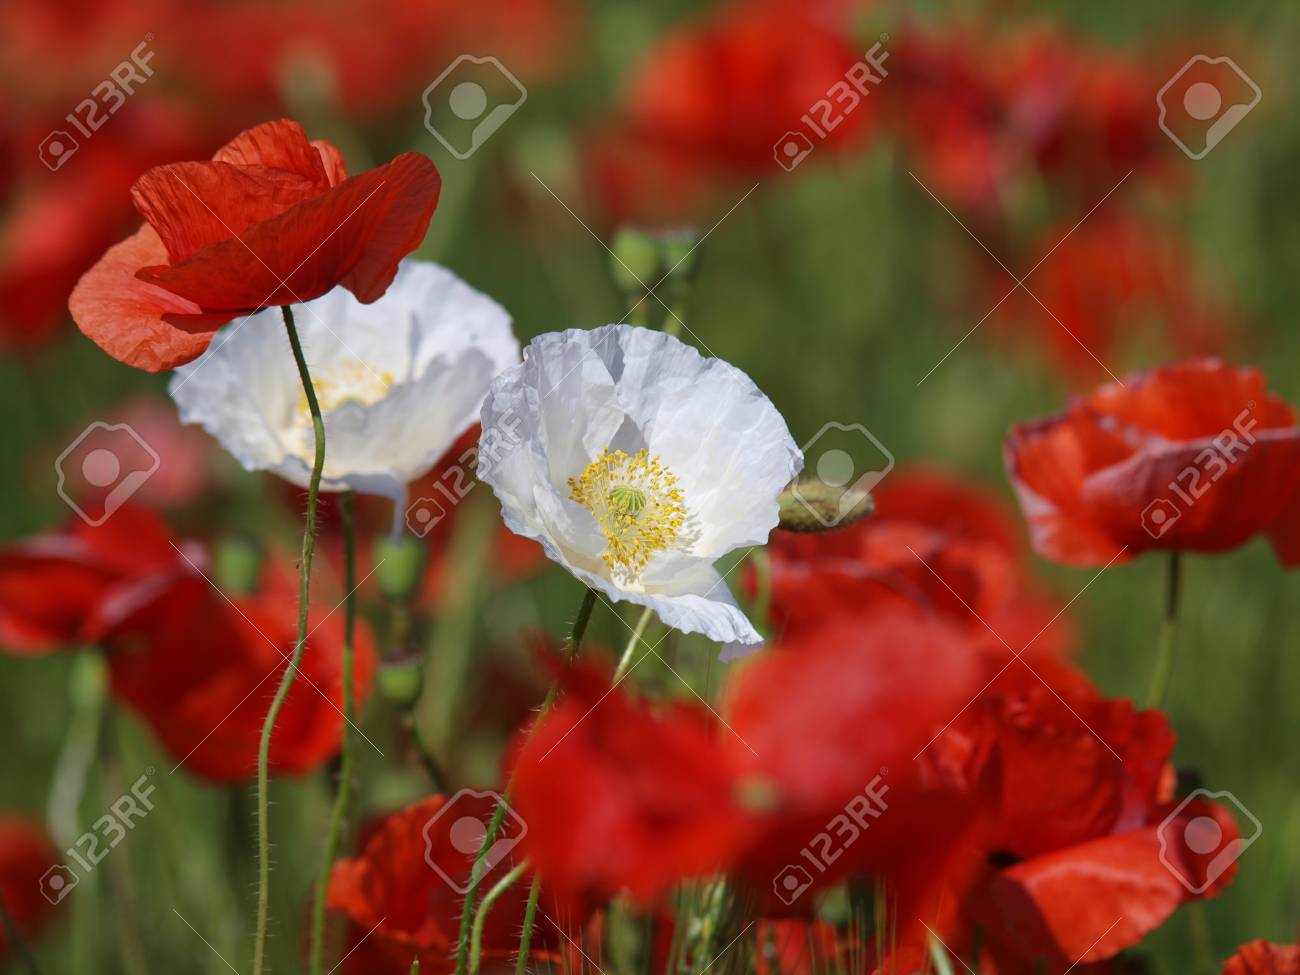 Two White Poppy Flowers Between Red Poppies On A Meadow Wild